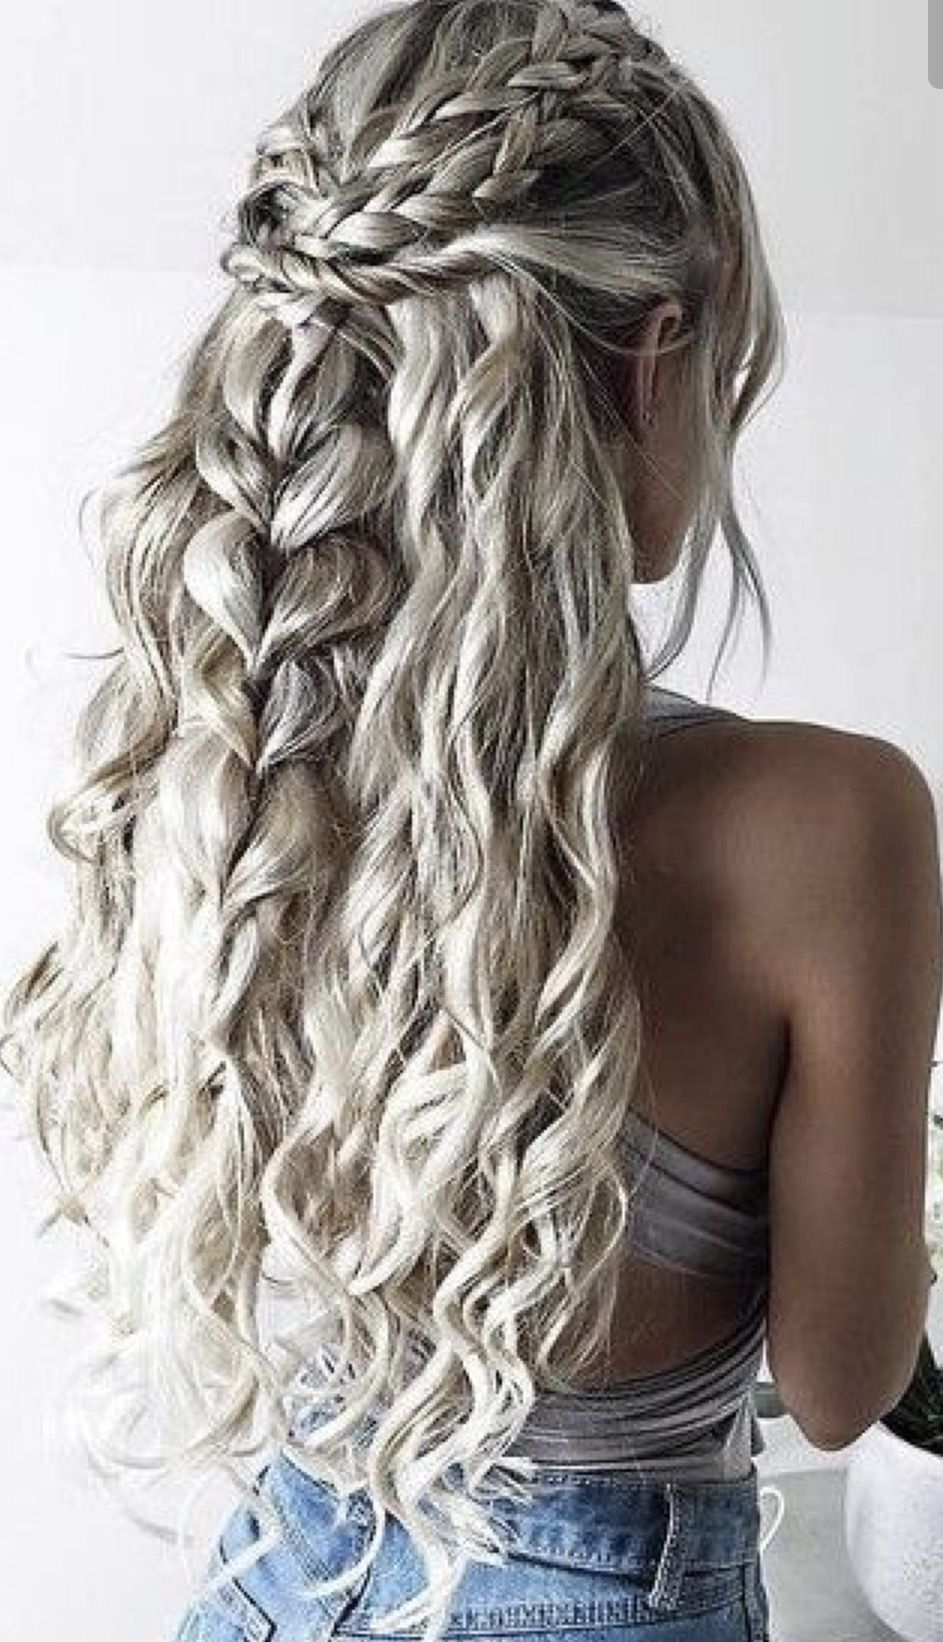 Braids With Natural Looking Curls The Hair Color Is Gorgeous Too Grey Curly Hair Festival Hair Braids Long Hair Styles